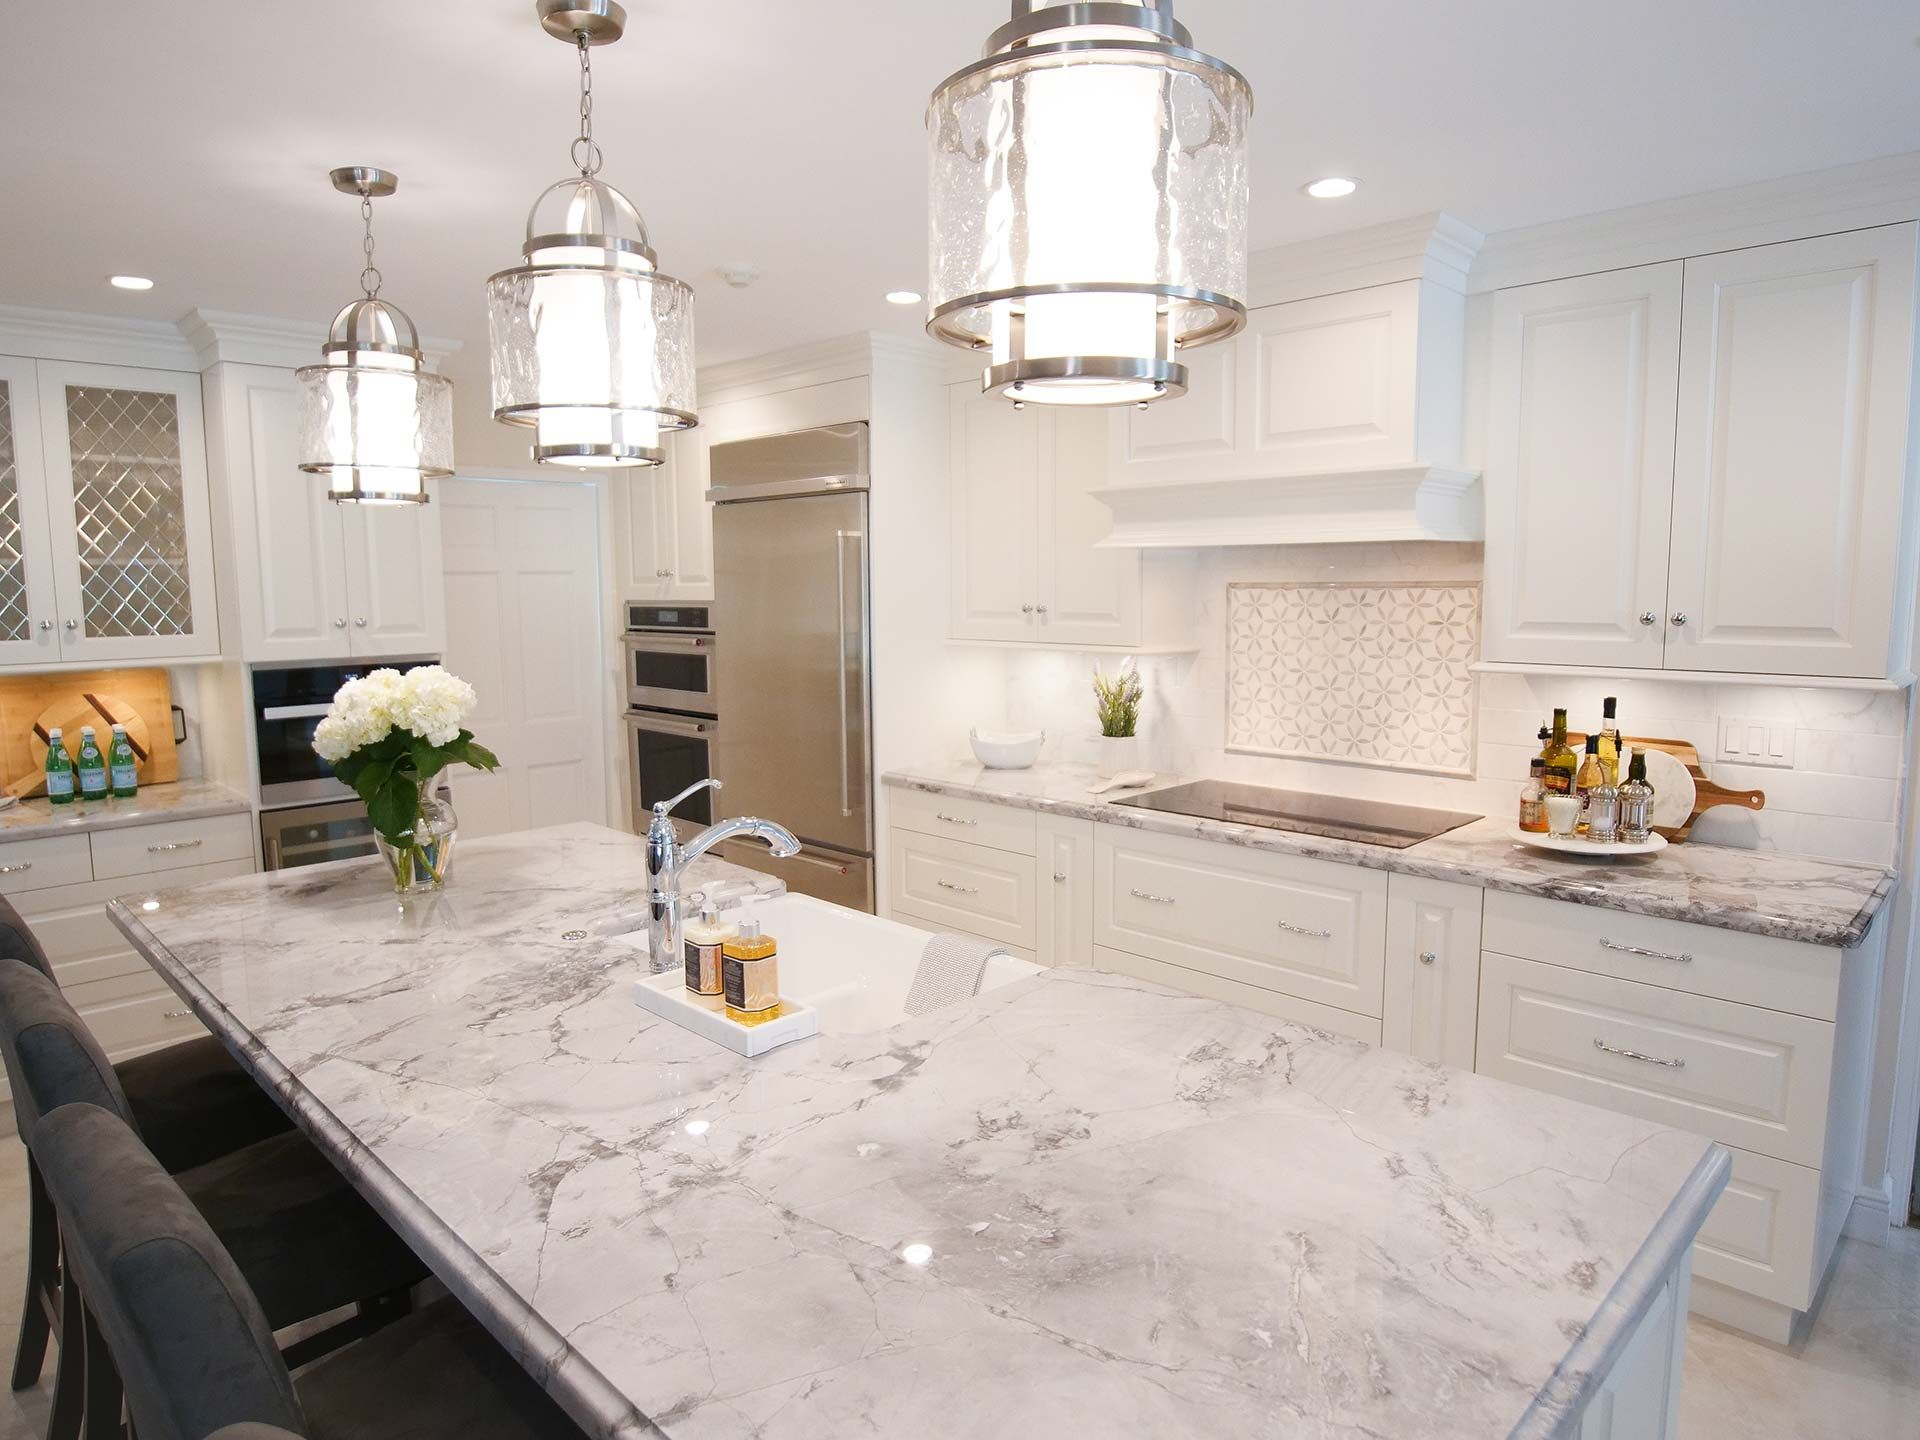 Kitchen Cabinets In Miami And Key Largo Fl In 2020 Kitchen Design Kitchen Remodel Kitchen Cabinet Design